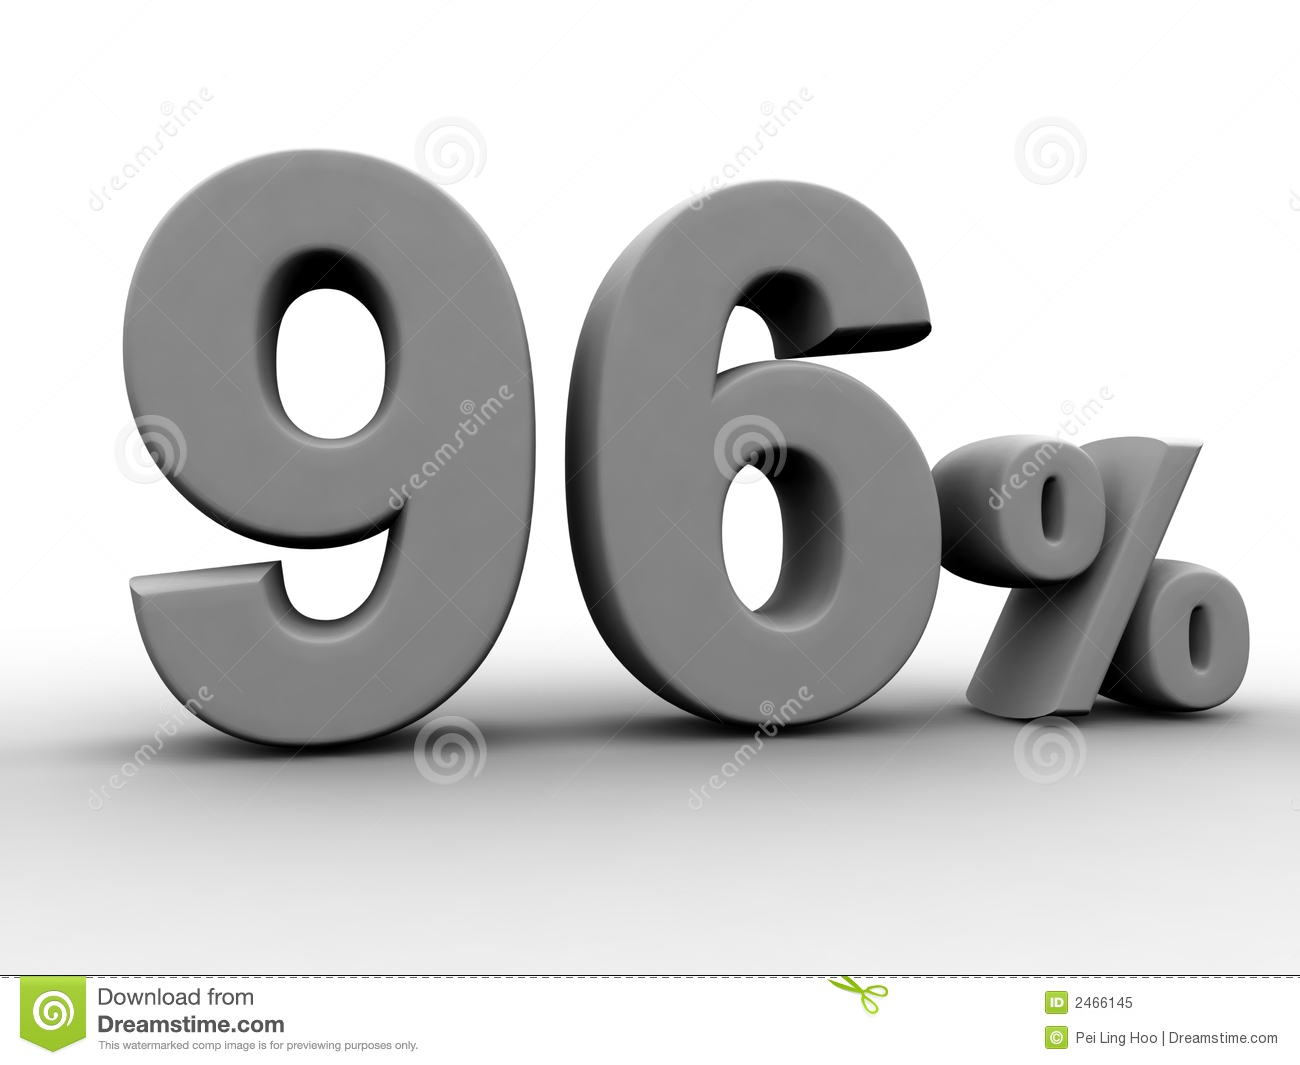 96 Percent Royalty Free Stock Photo - Image: 2466145